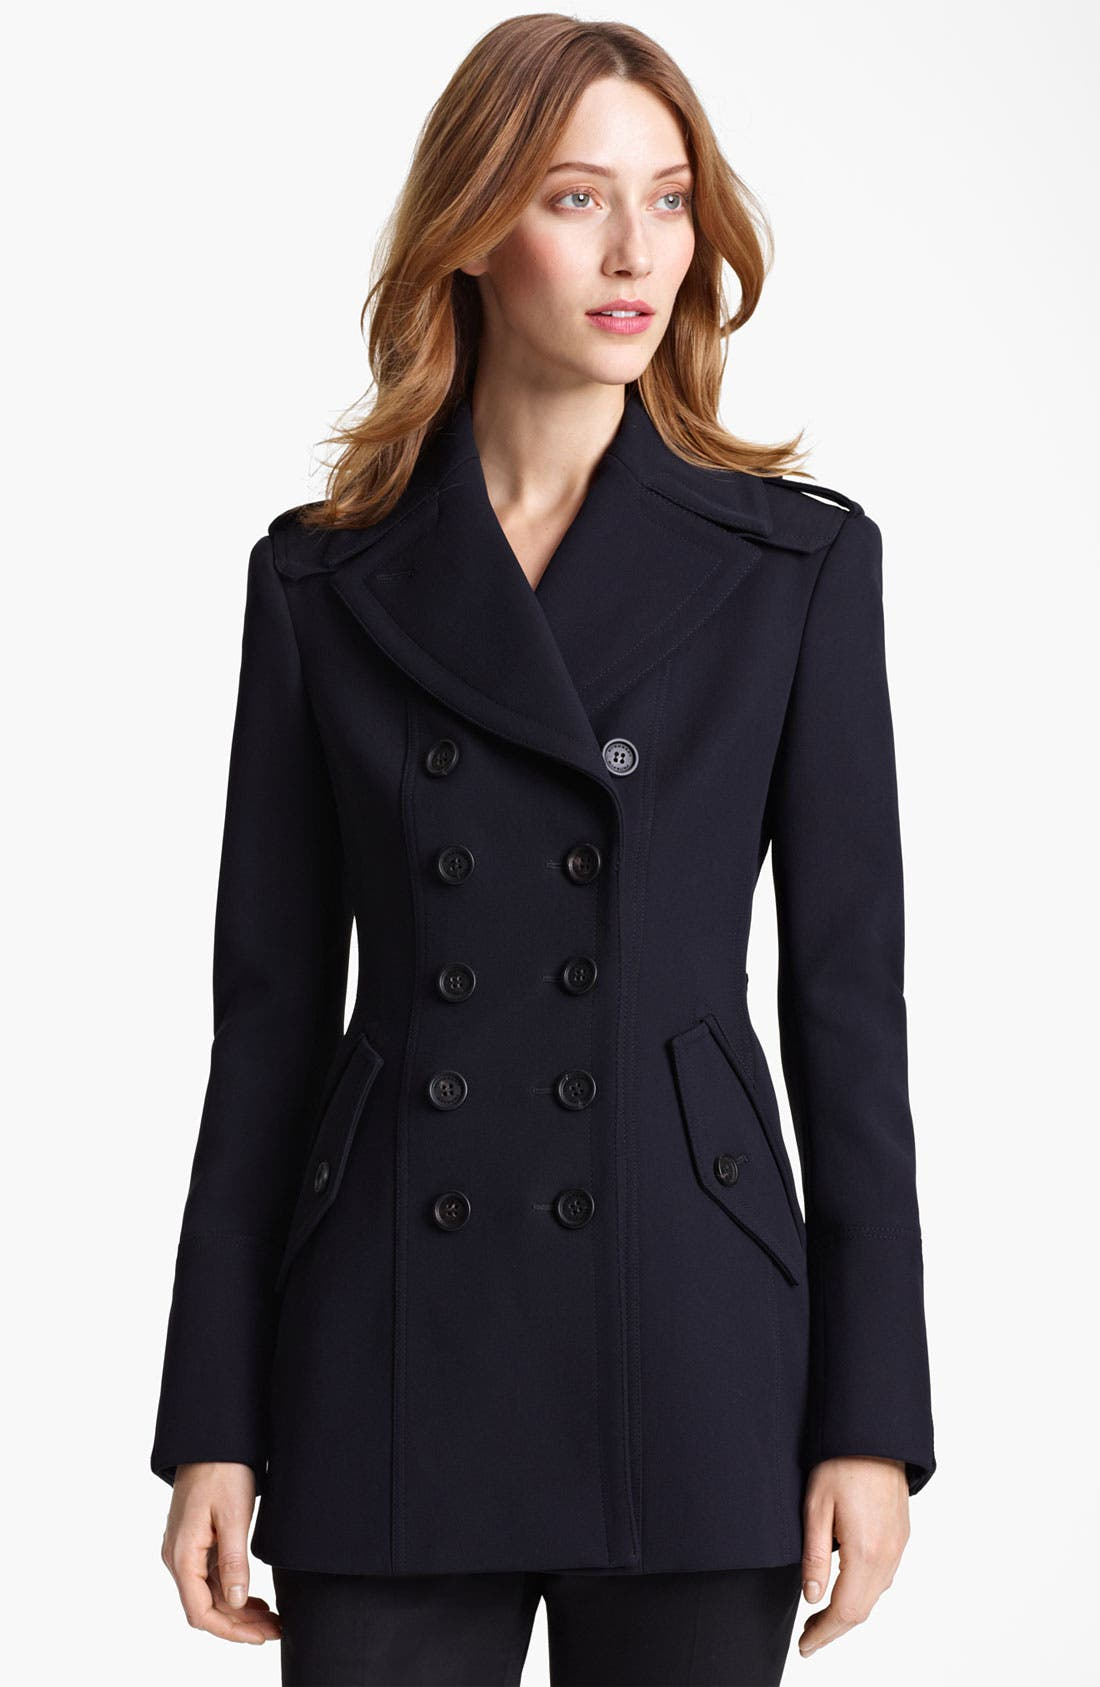 Alternate Image 1 Selected - Burberry Prorsum Double Breasted Peacoat